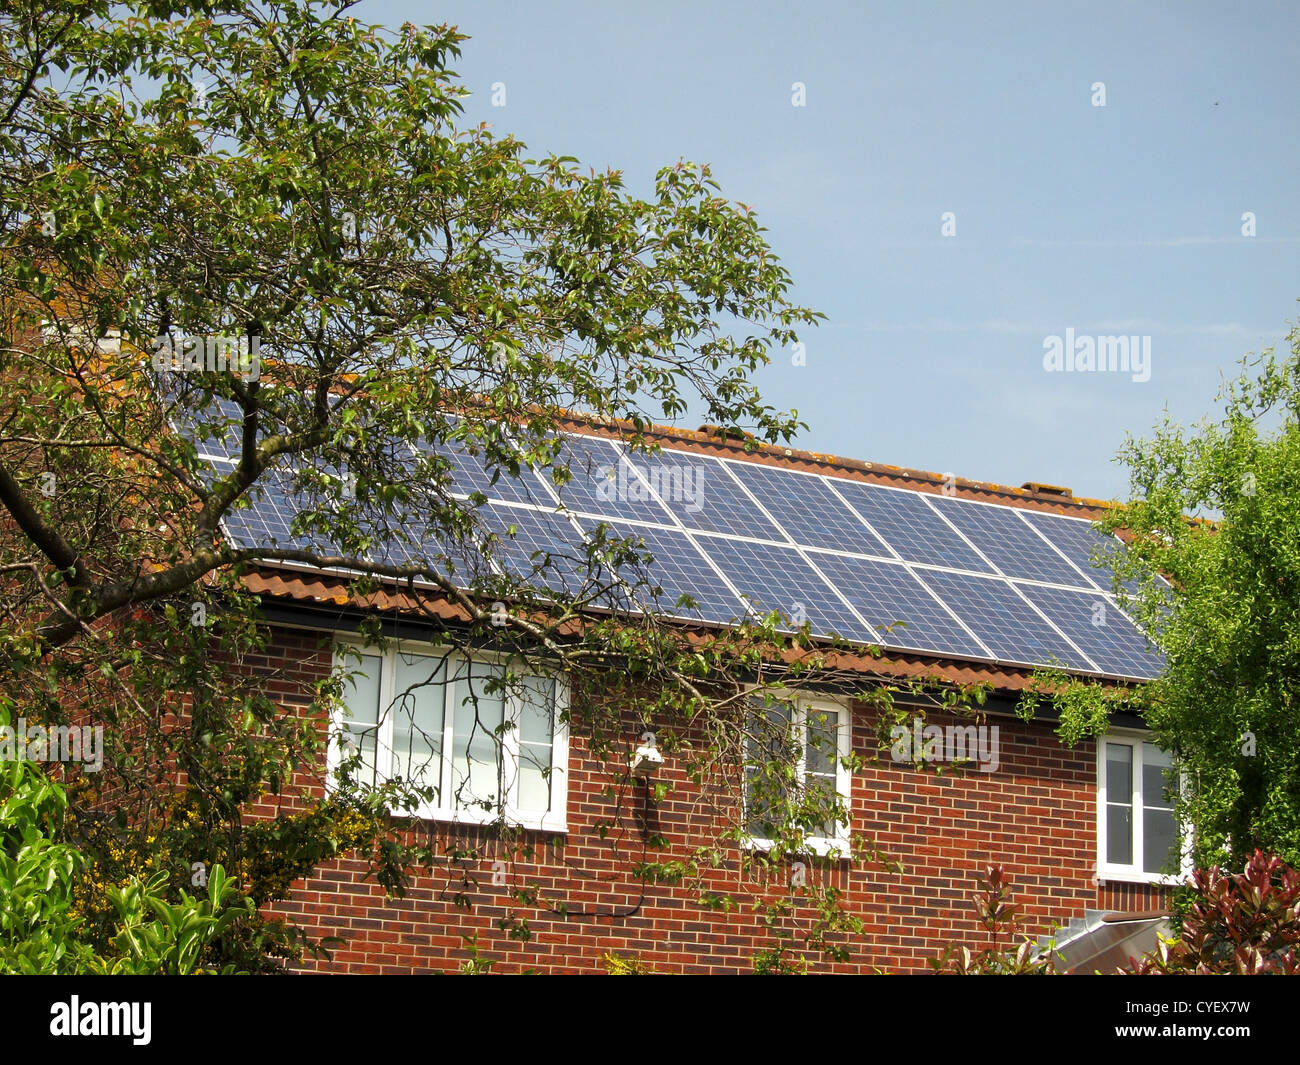 Typical English house with a set of solar panels, May 2012 - Stock Image